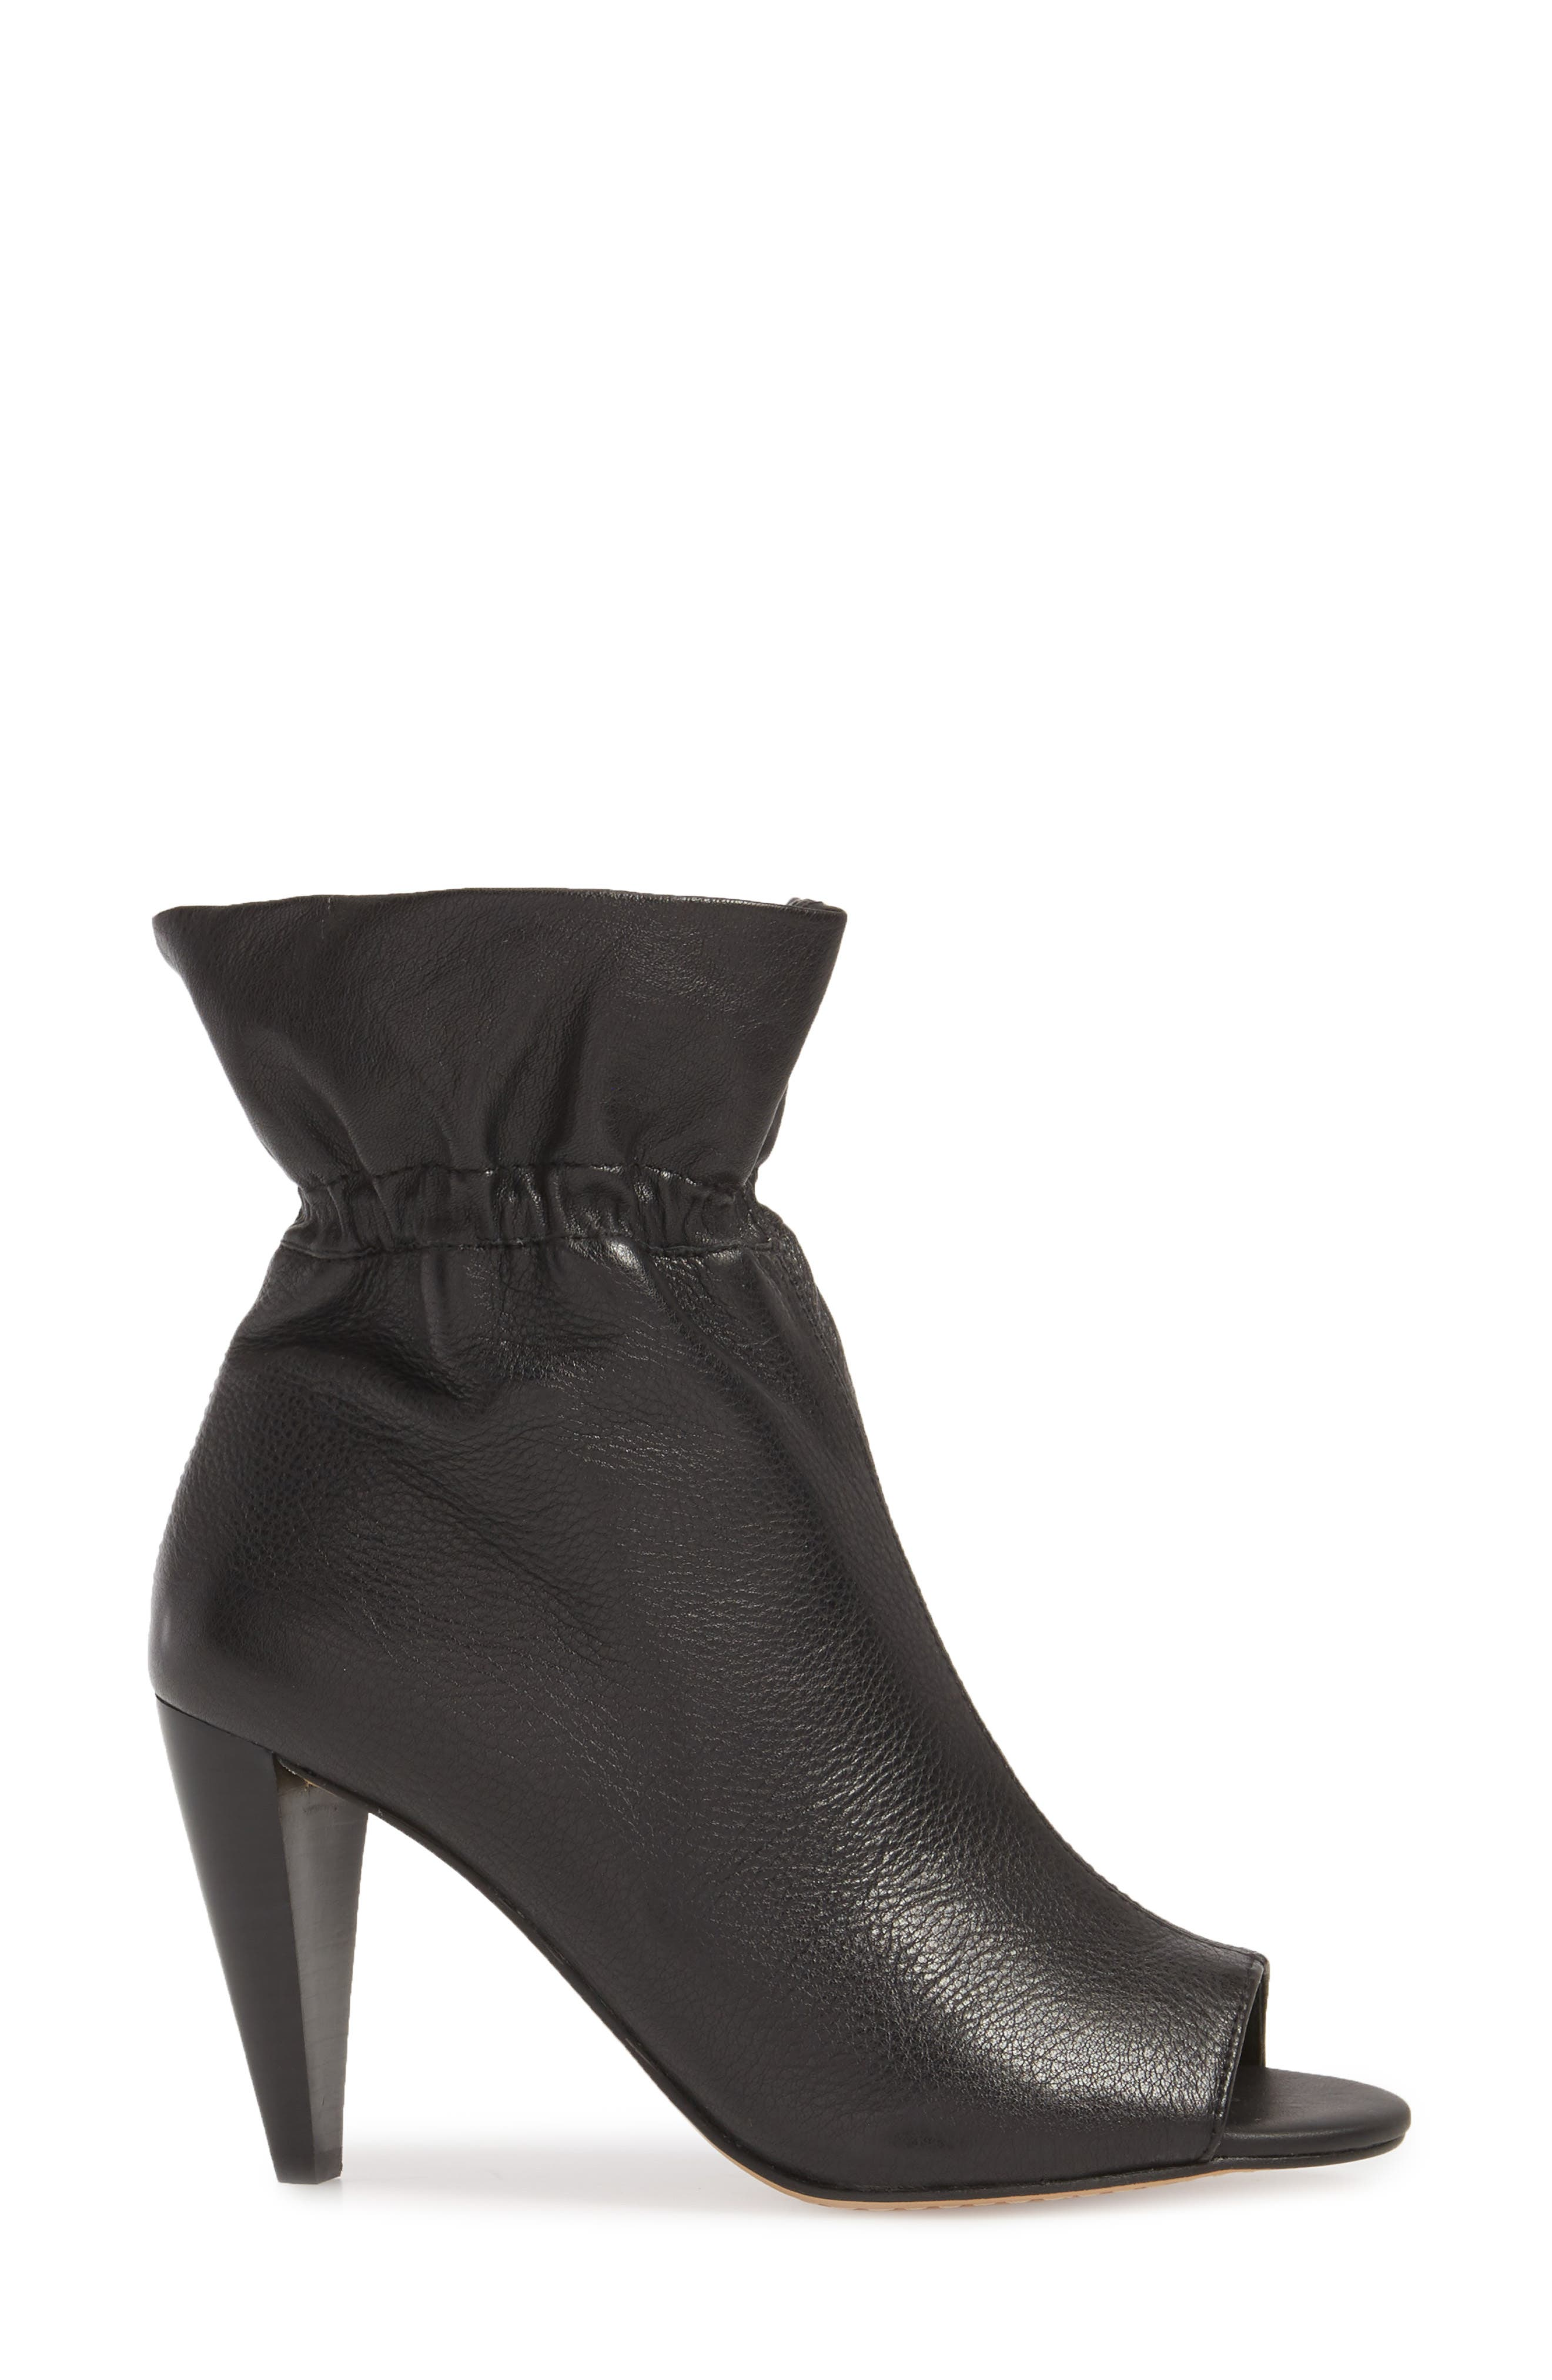 Addiena Bootie,                             Alternate thumbnail 3, color,                             BLACK LEATHER